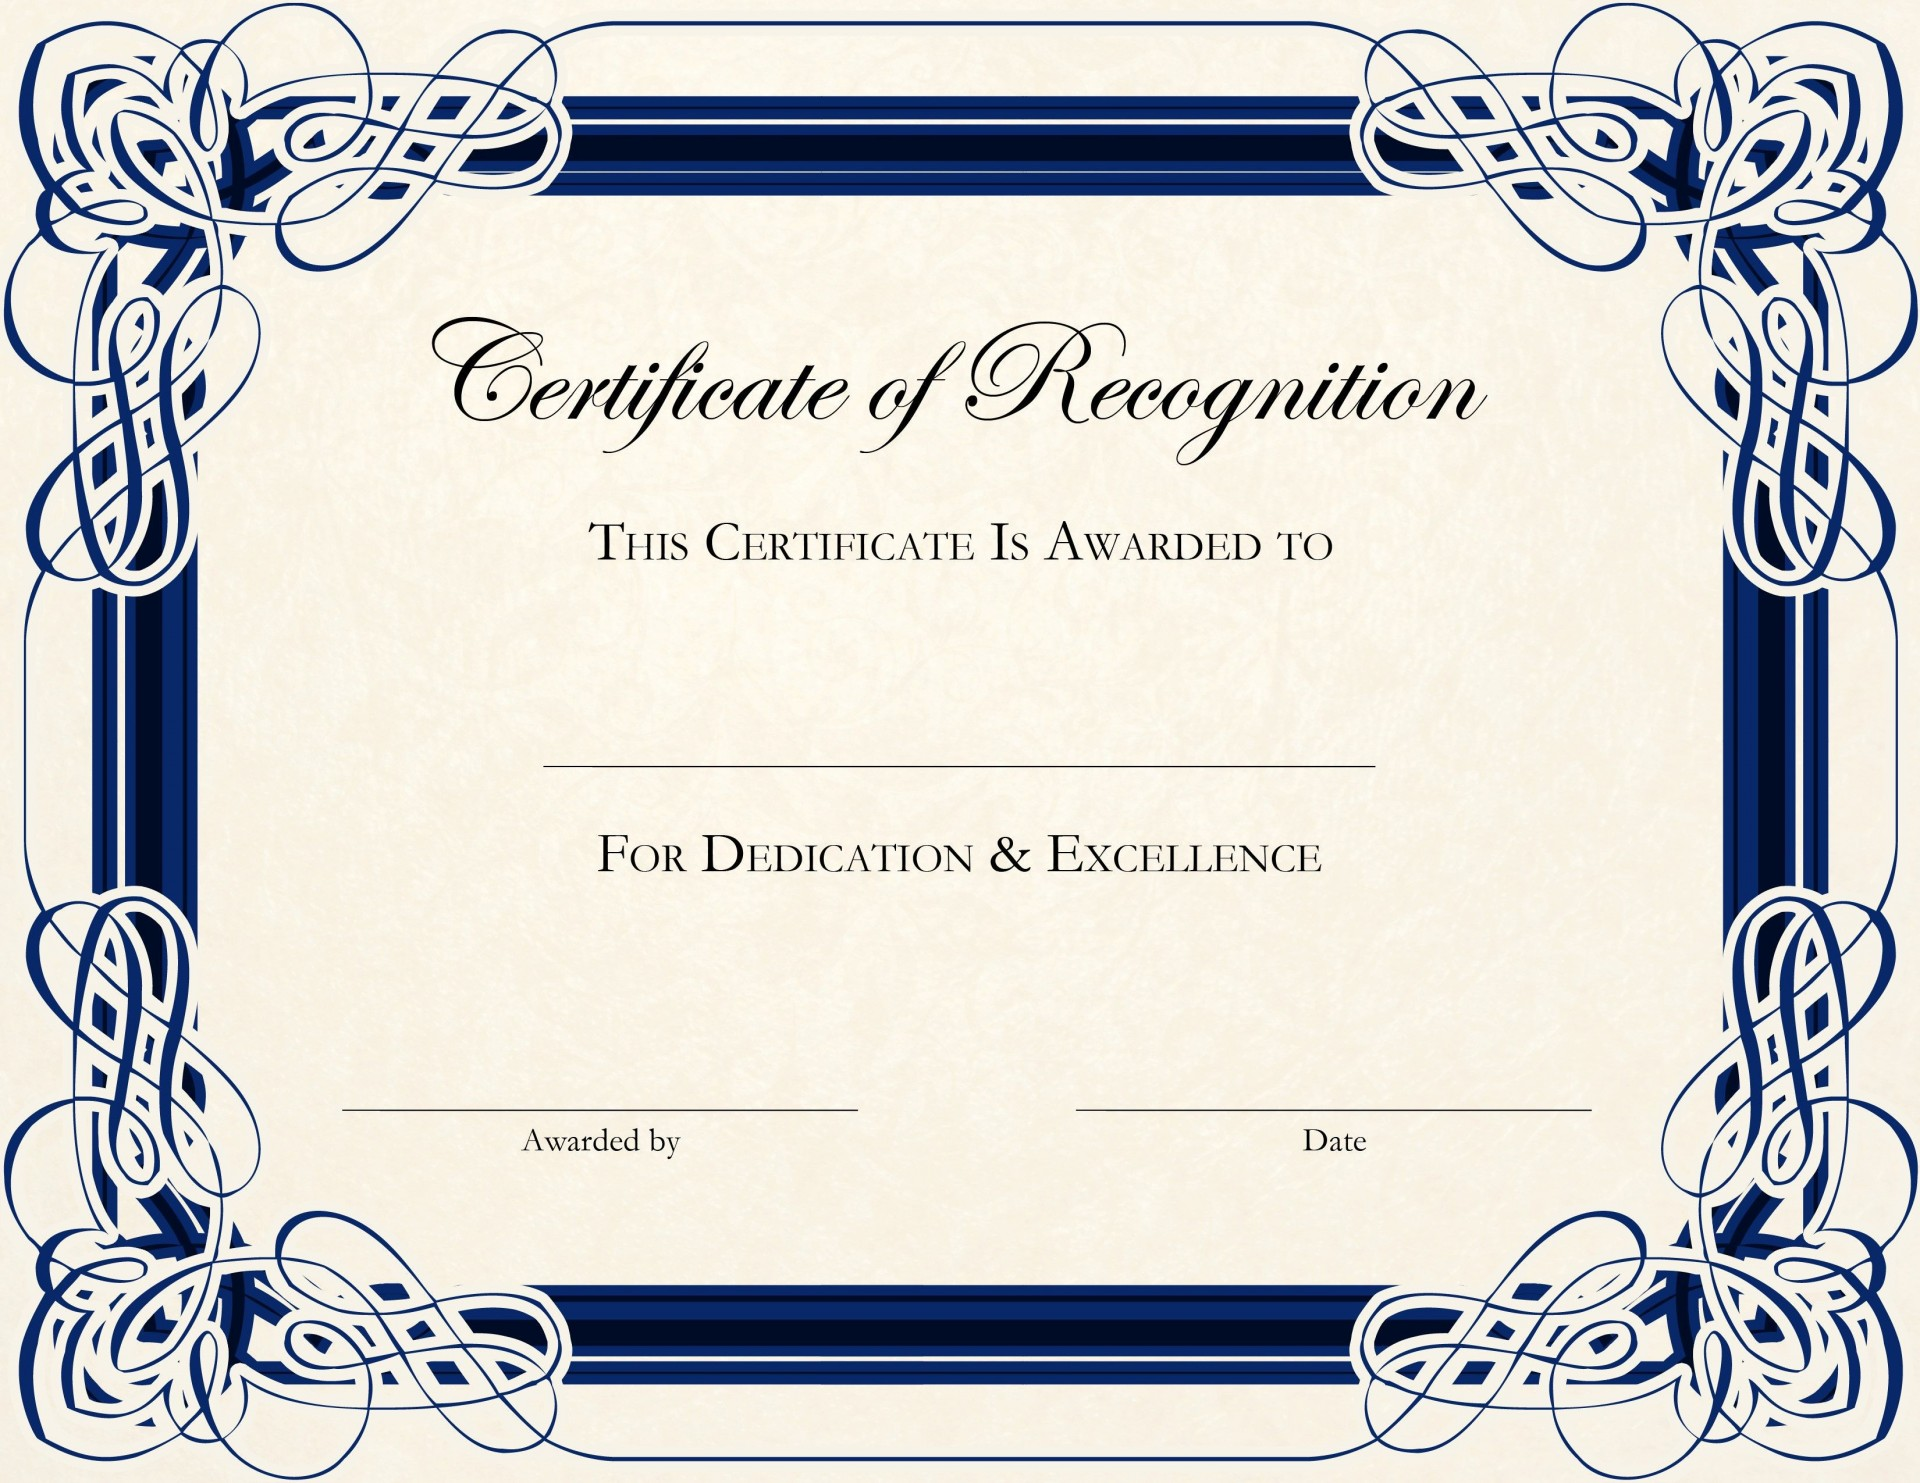 000 Astounding Free Template For Certificate Highest Quality  Certificates Online Of Completion Attendance Printable Participation1920